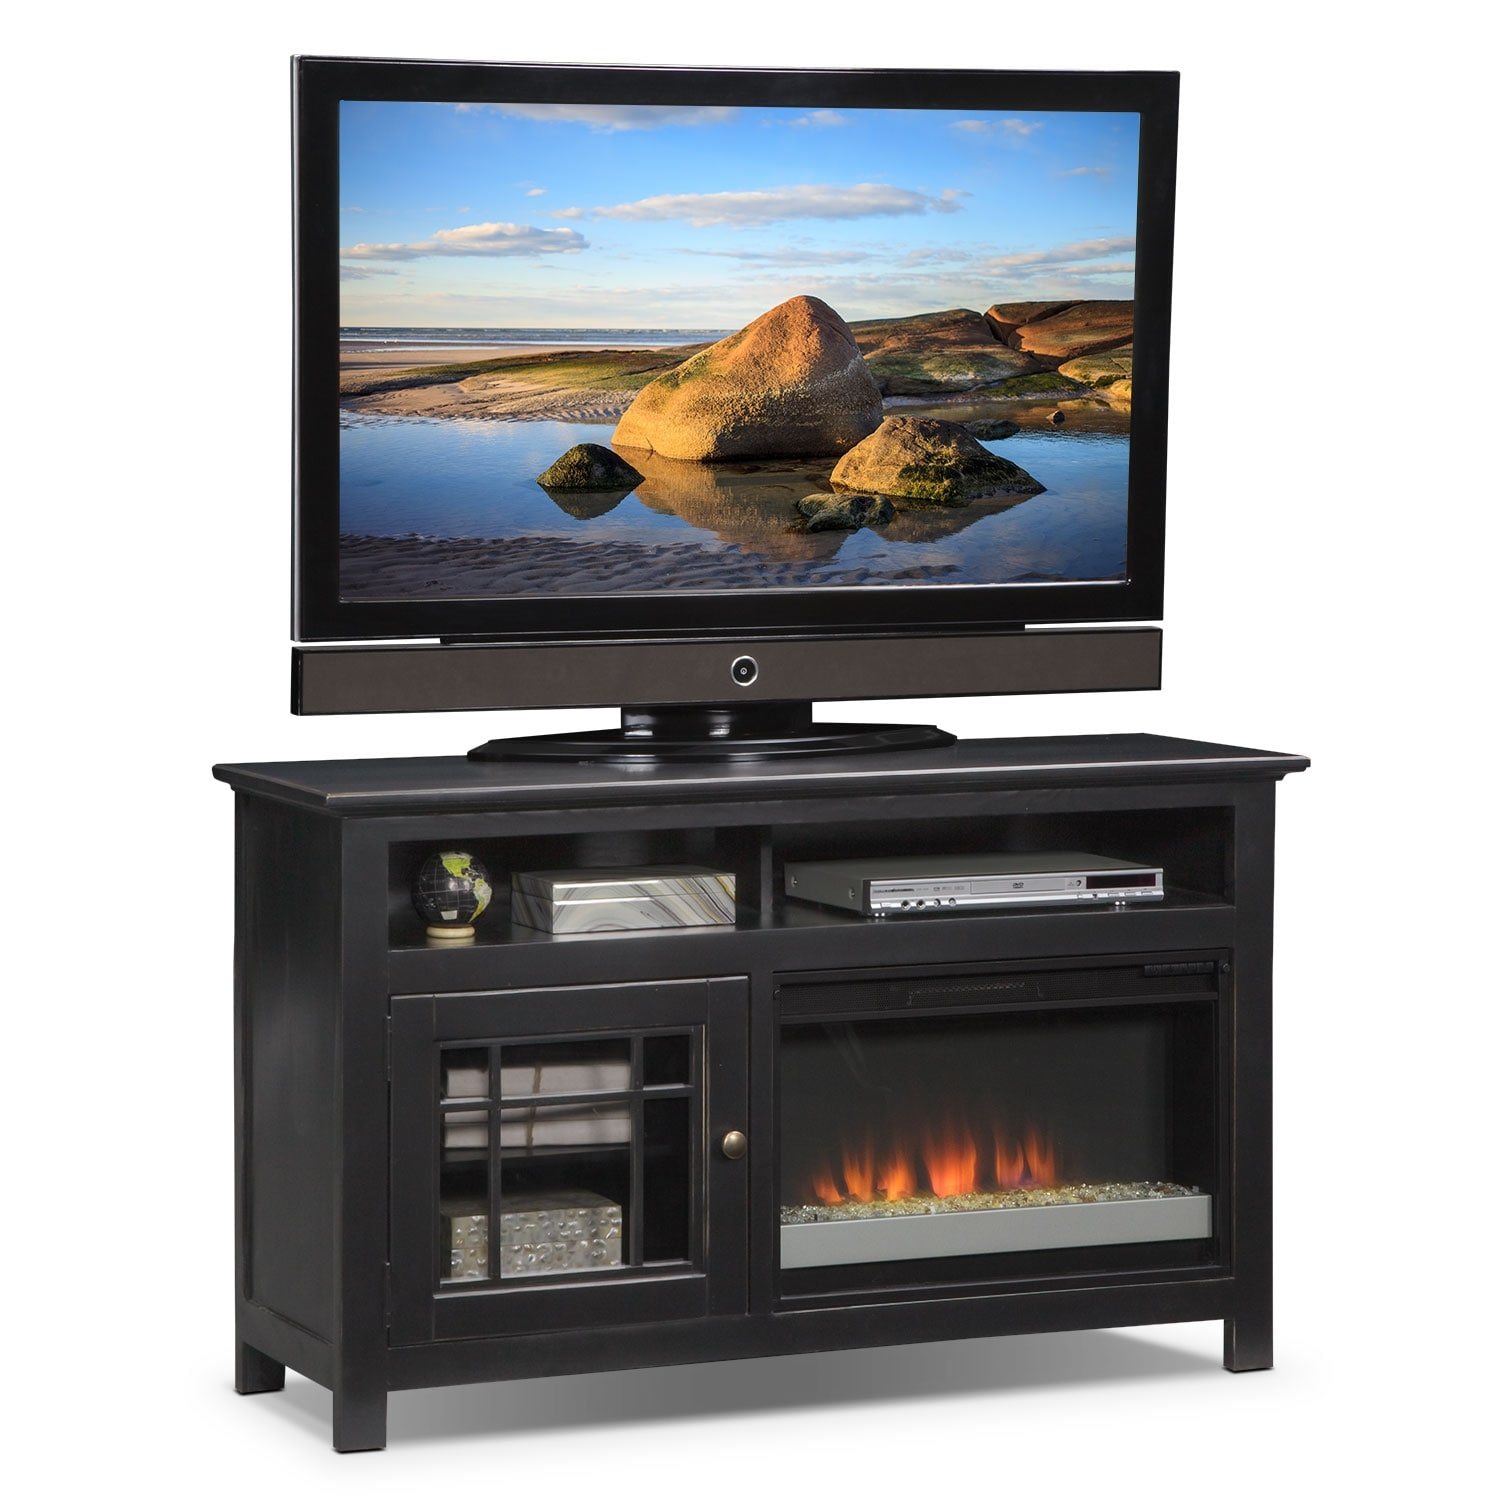 """Merrick 54"""" Fireplace TV Stand with Contemporary Insert - Black"""